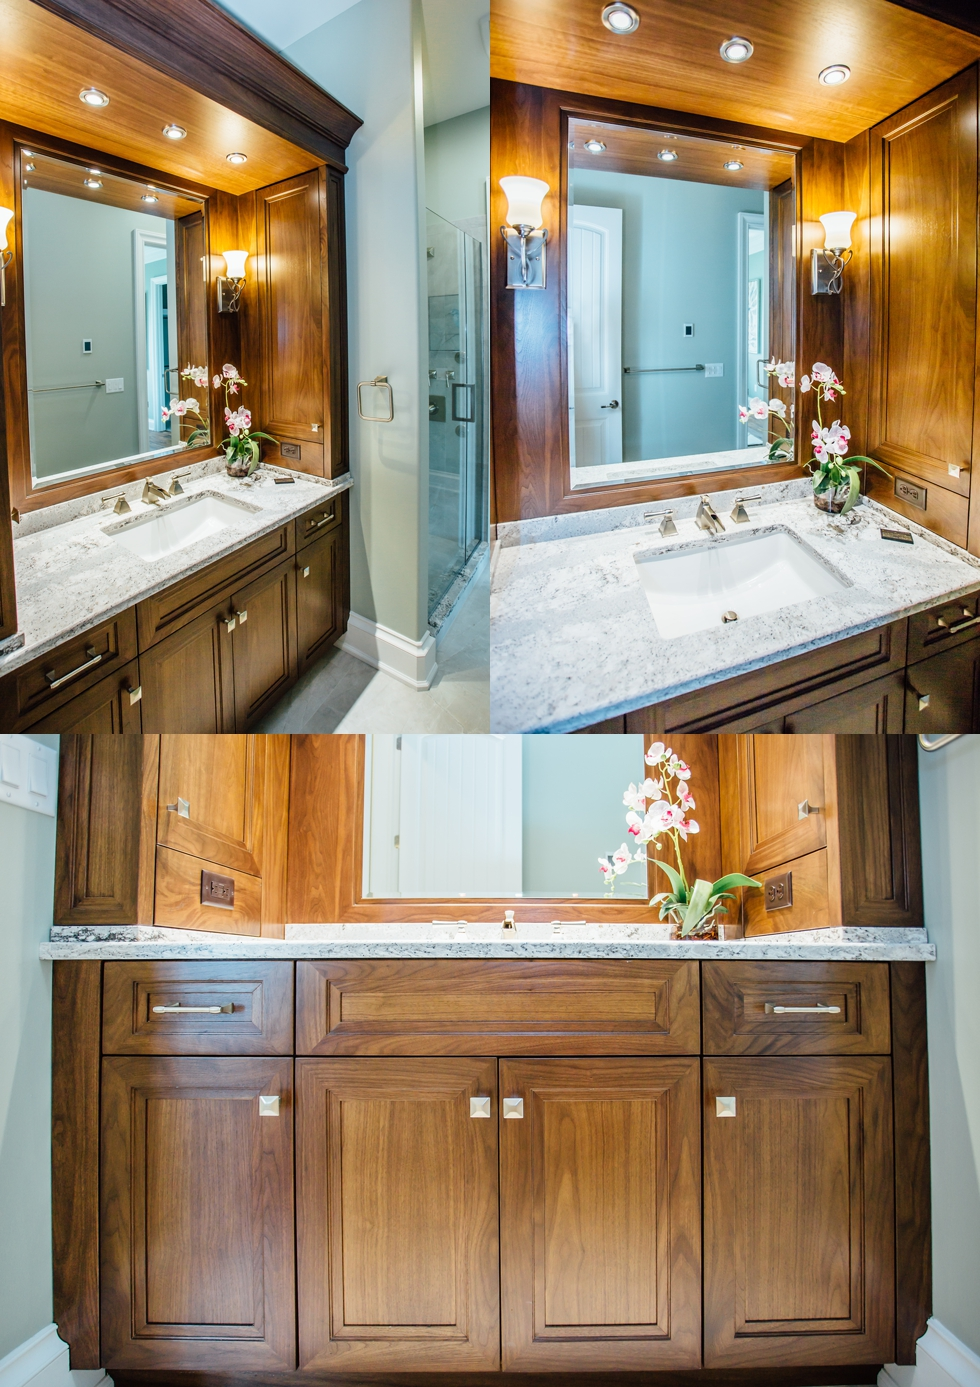 bathroom vanities - western new york custom cabinetry & millwork